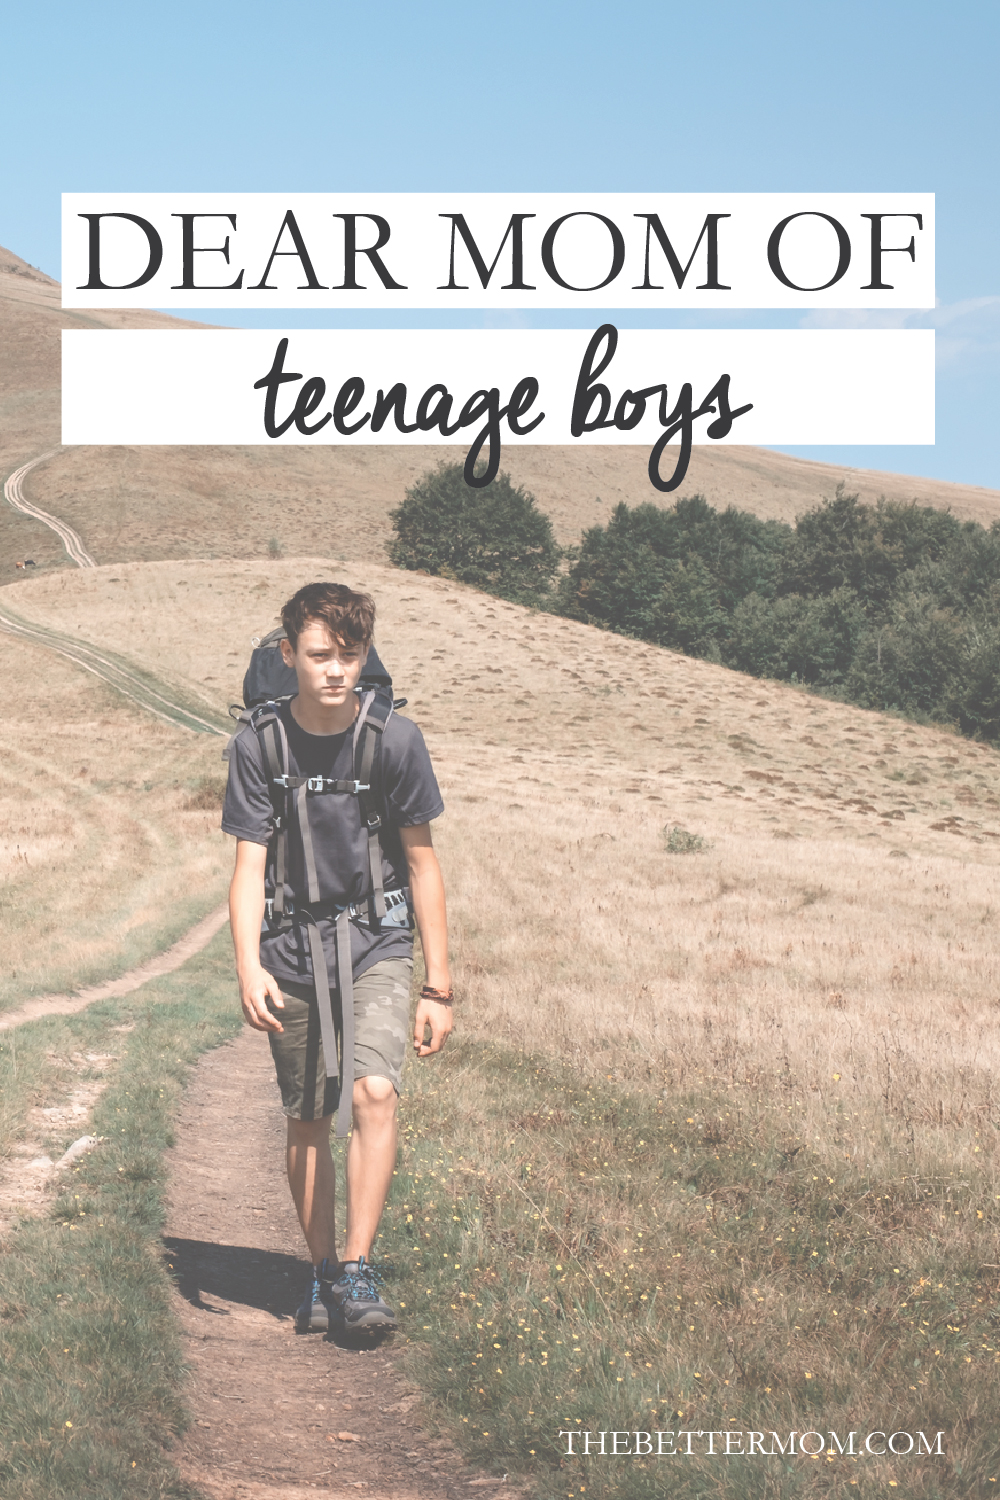 Are you raising teenage boys? Moms, we've got you- with heartfelt encouragement from other moms right where you're at, and sage wisdom to help you make it through this season.